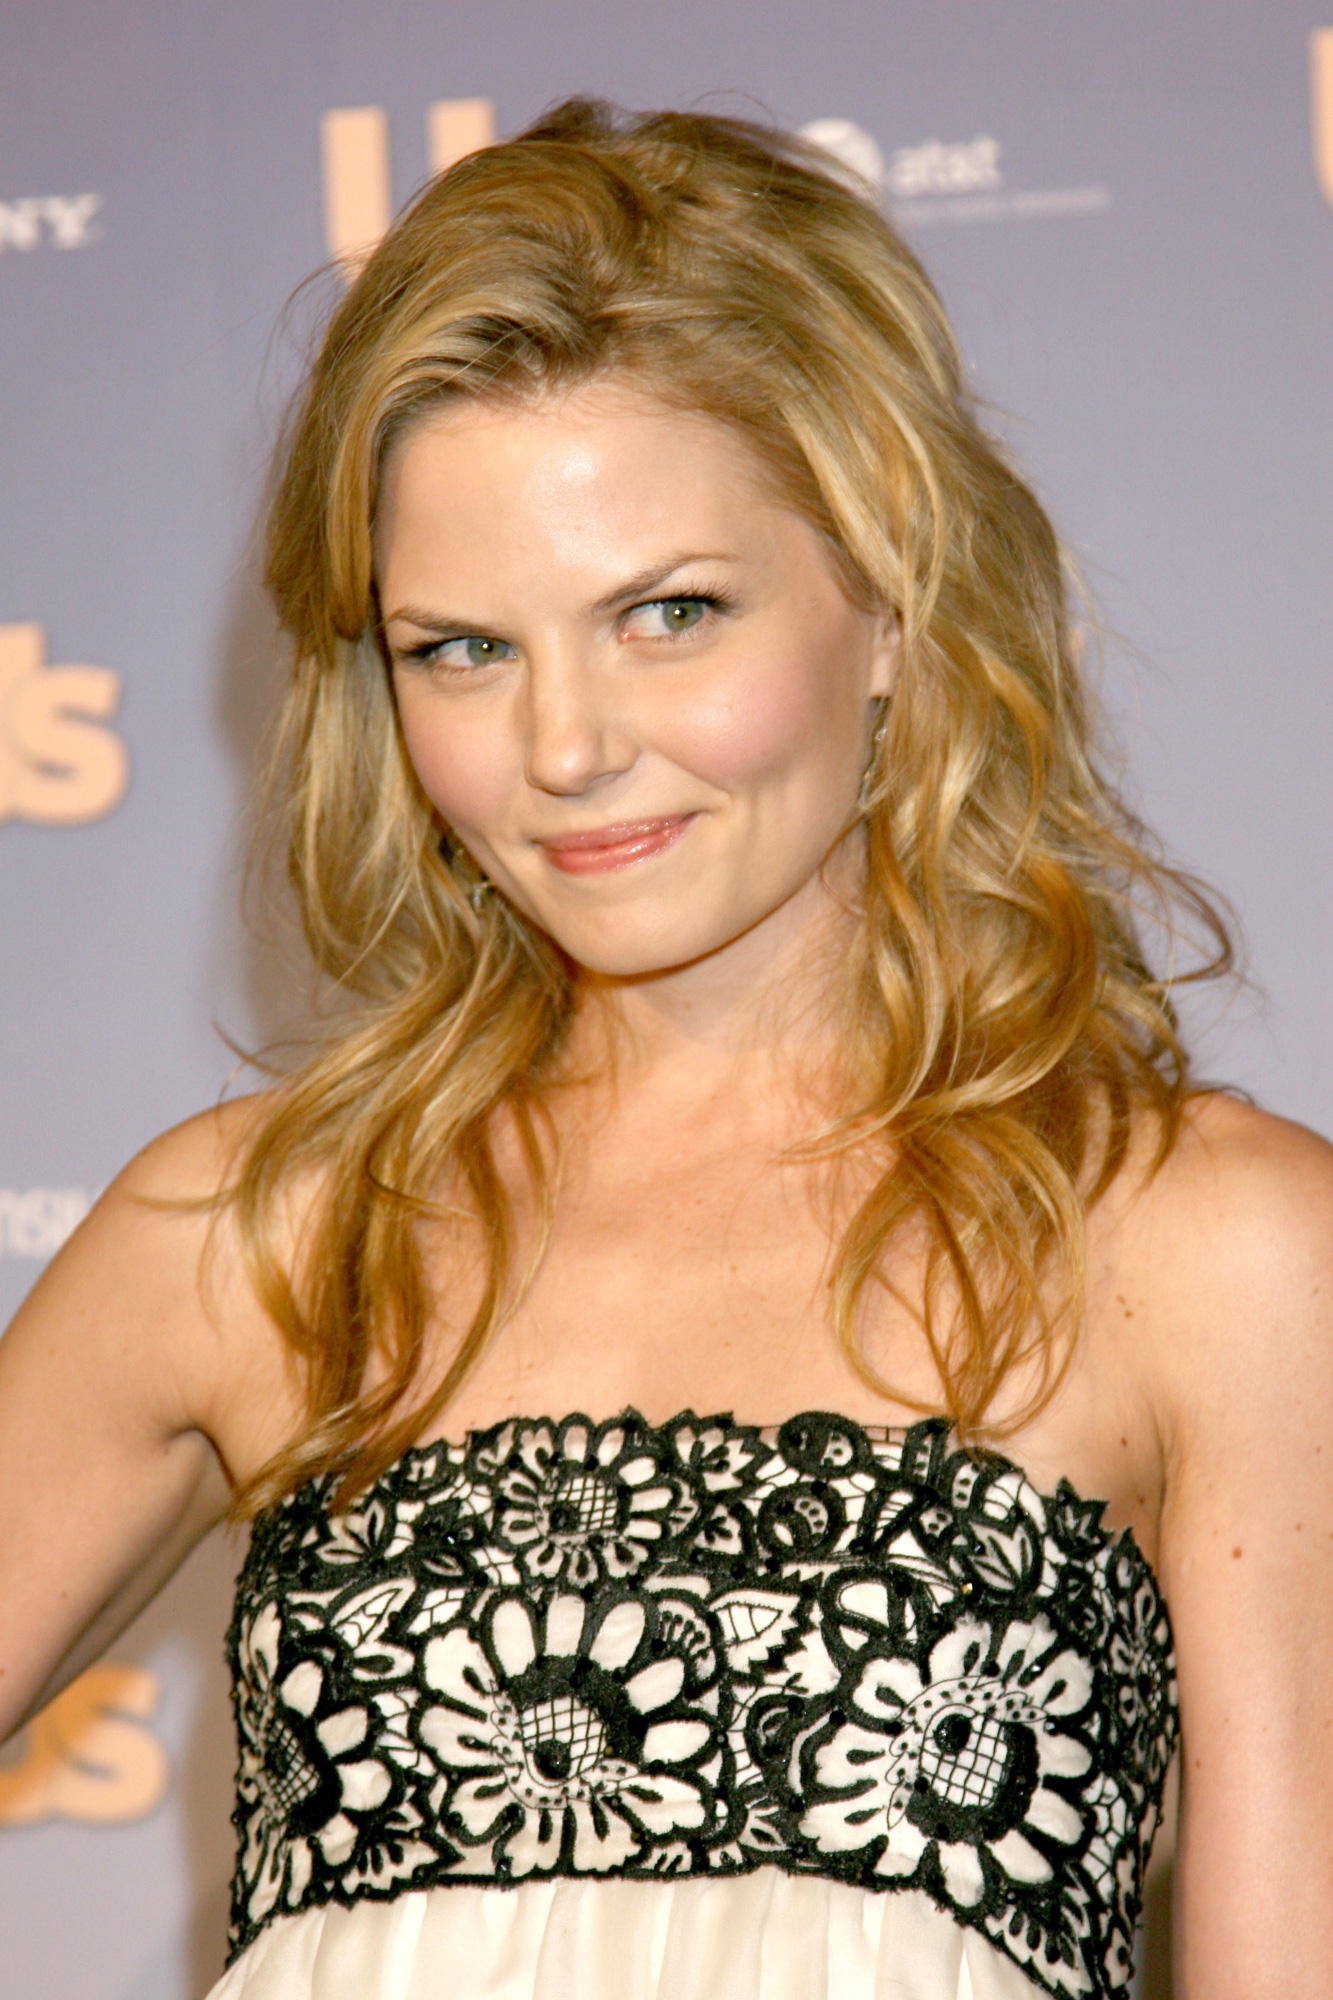 Дженнифер Моррисон - Jennifer Morrison фото №166322: http://www.theplace.ru/photos/photo.php?id=166322